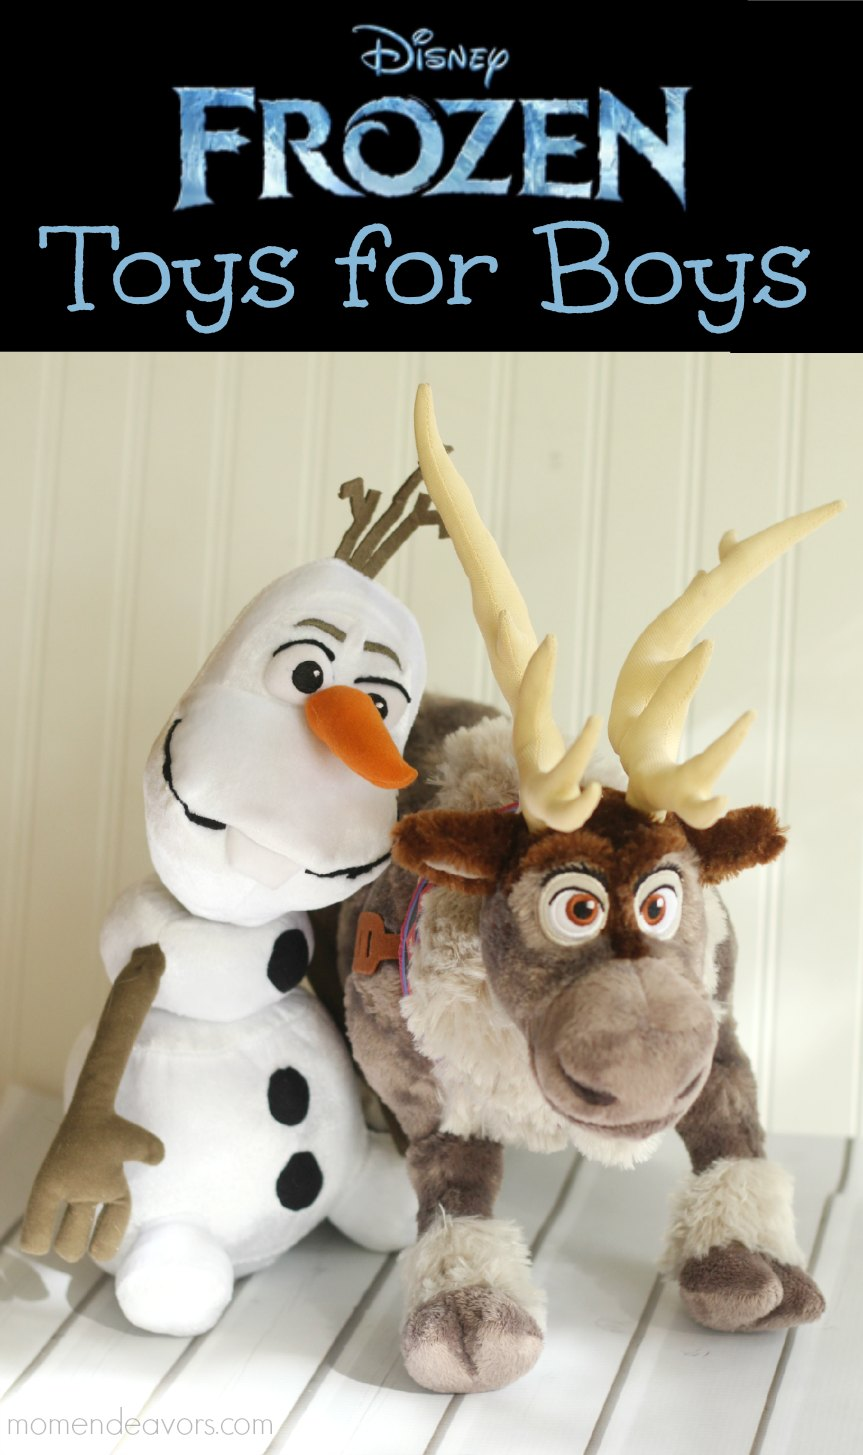 Check out these great FROZEN toys for boys!